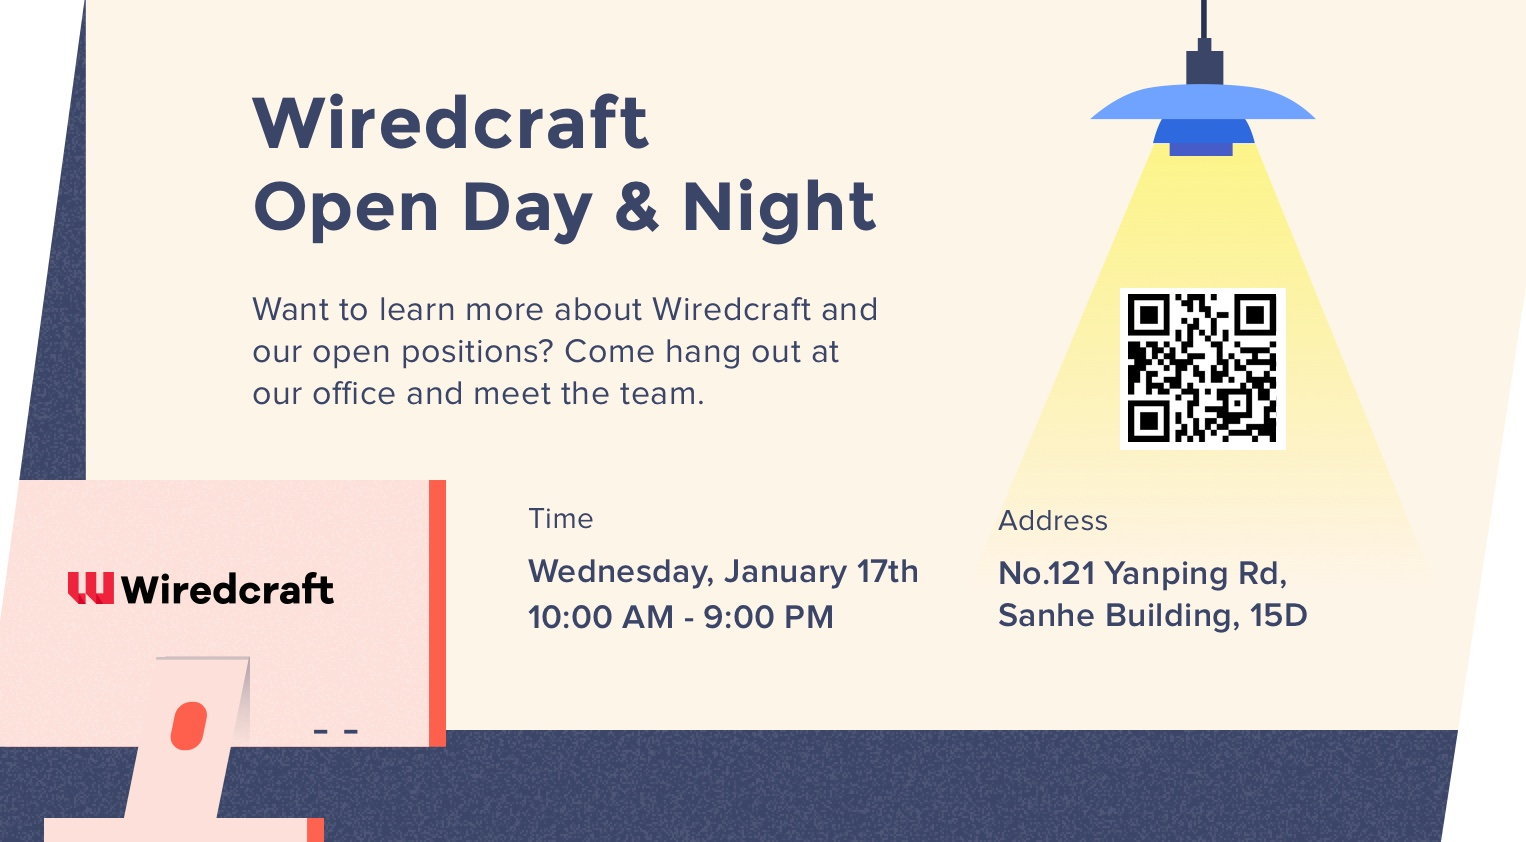 Wiredcraft Open Day